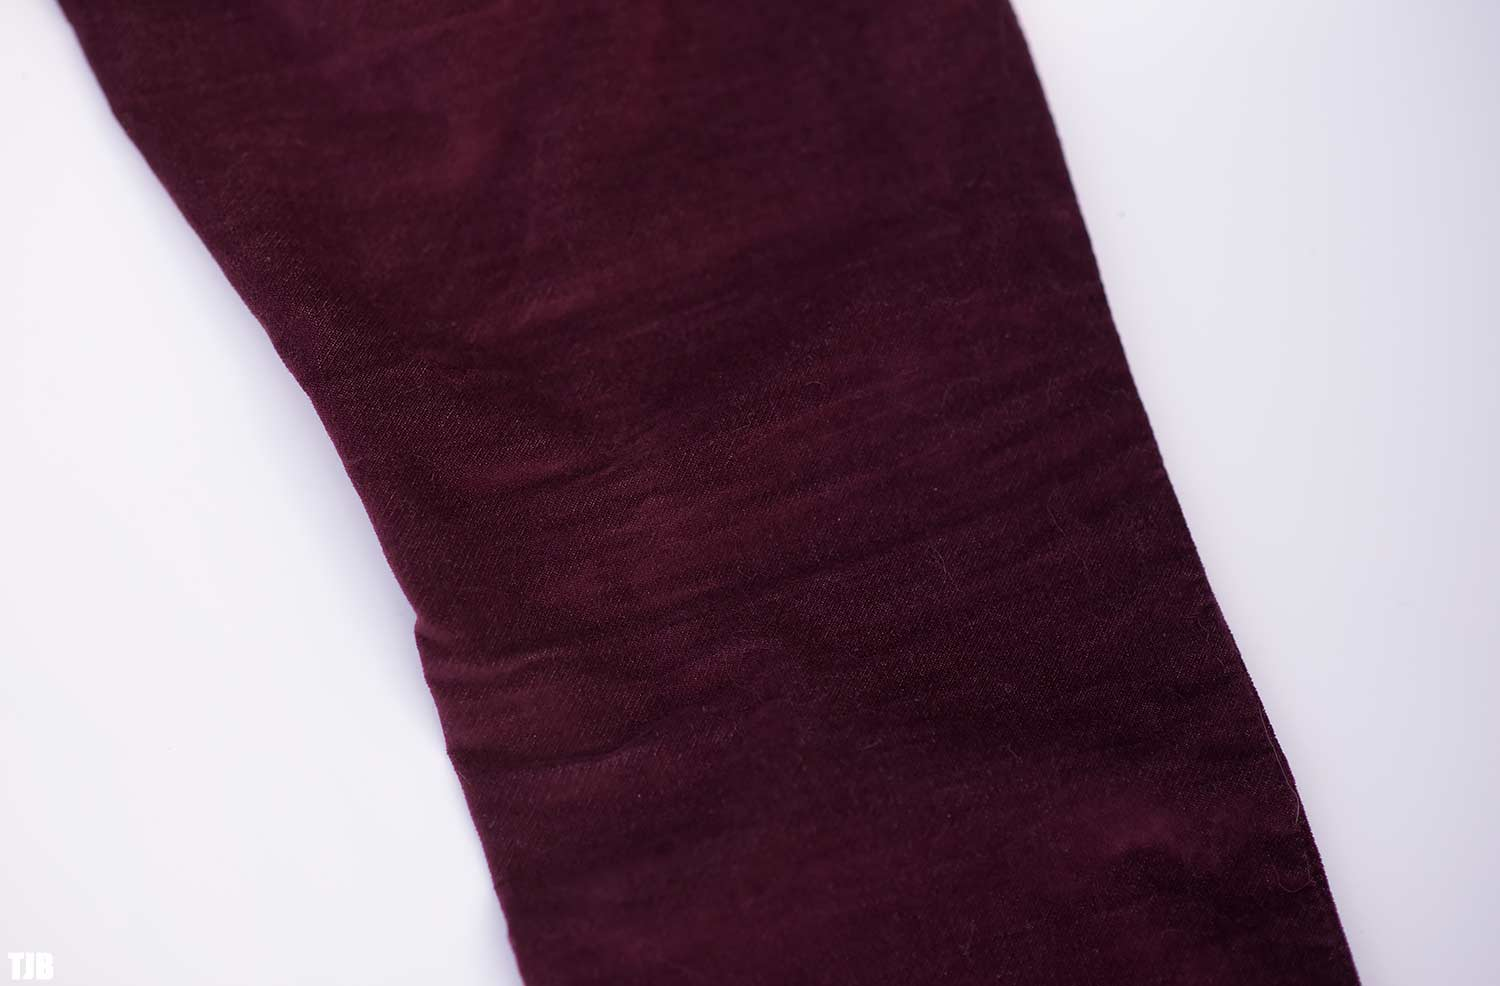 mcguire-denim-newton-exposed-button-skinny-pants-in-pinot-review-5